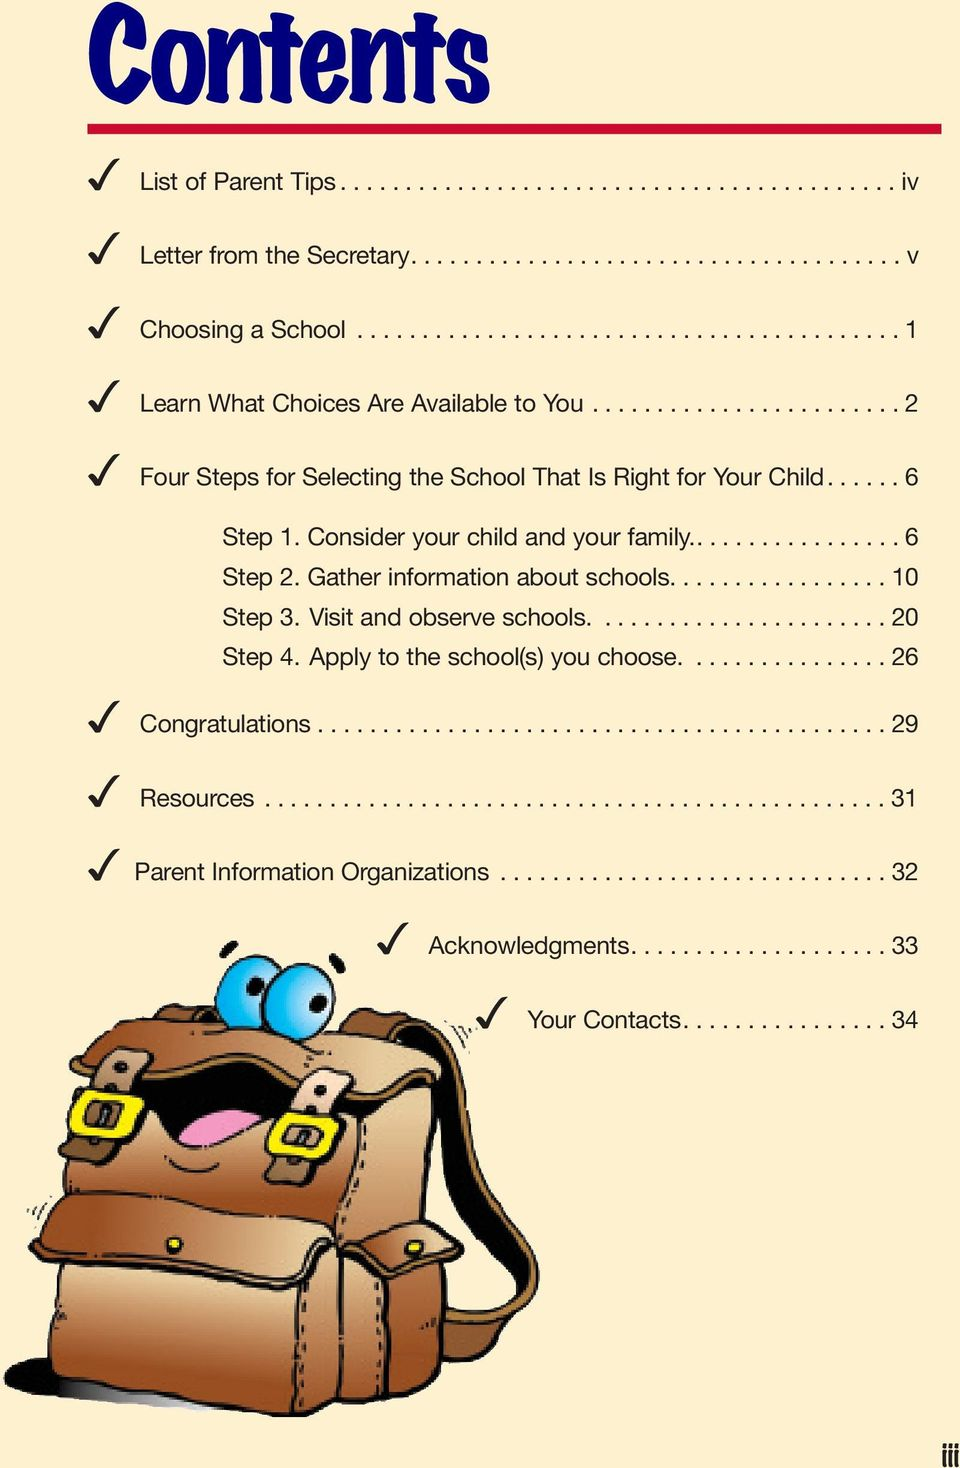 Consider your child and your family................. 6 Step 2. Gather information about schools................. 10 Step 3. Visit and observe schools....................... 20 Step 4.